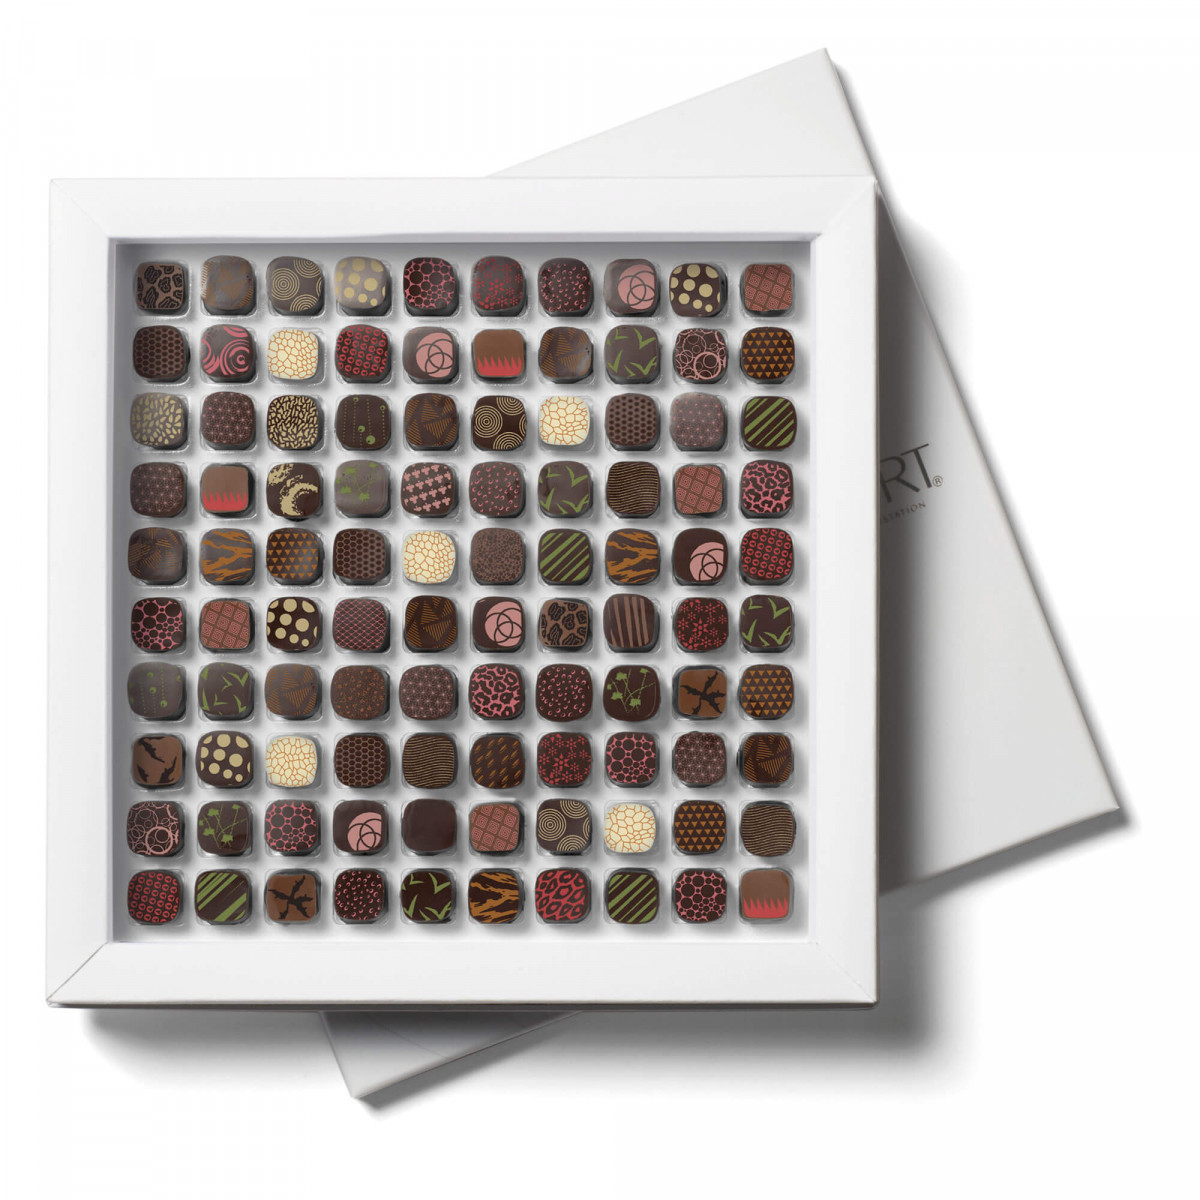 Petits RICHART Extase Box of 100 filled chocolates